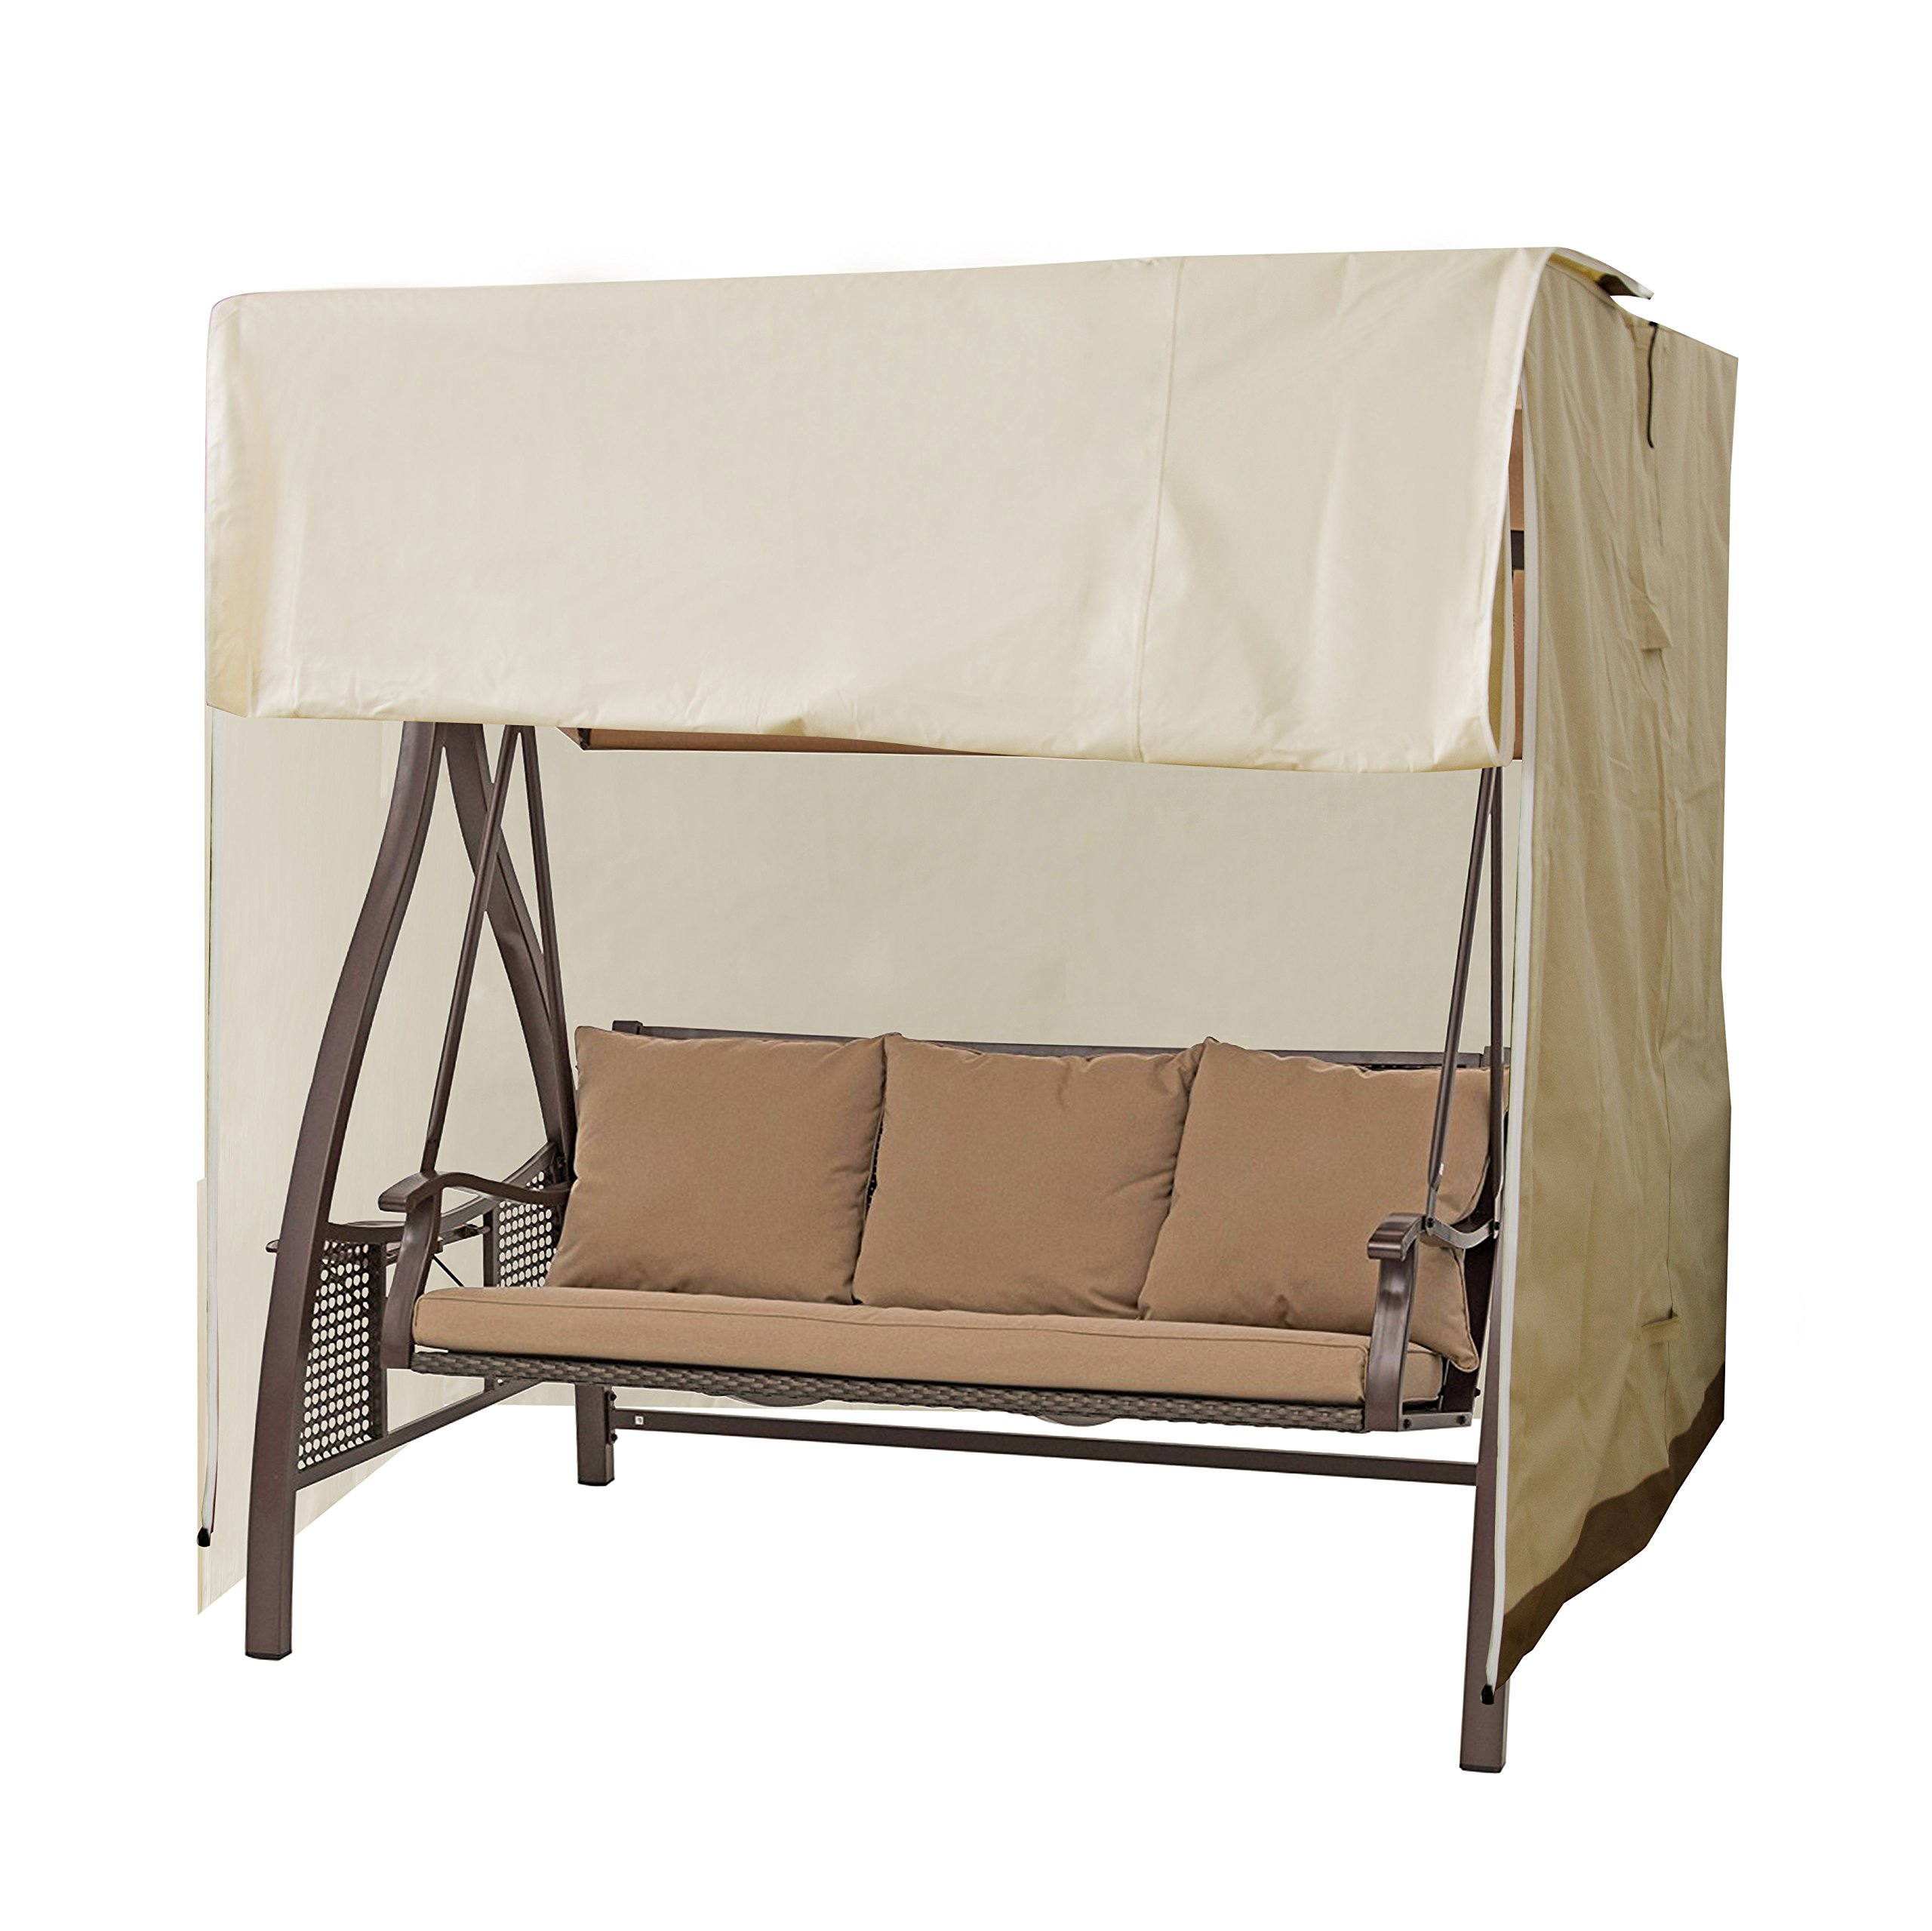 APARESSE Outdoor 2-Seater Hammock Swing Glider Canopy Cover Beige, All Weather Protection, Water Resistant, 77'' L x 60'' W x 71'' H by APARESSE